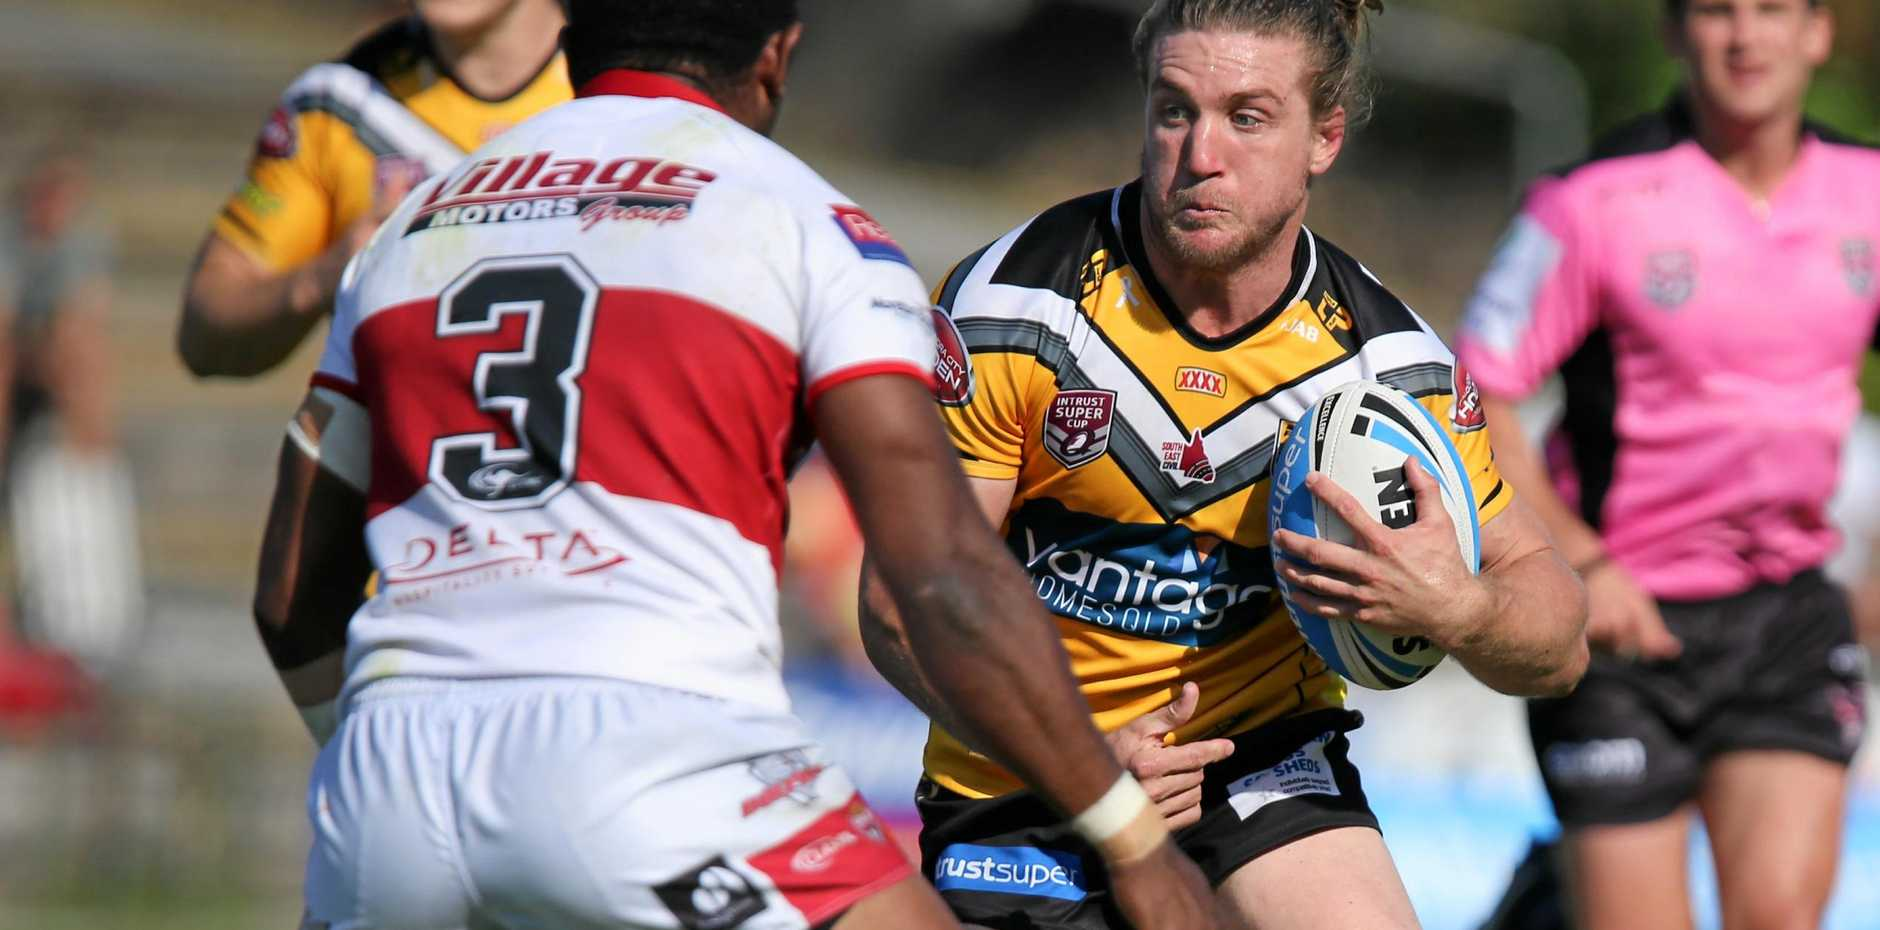 STRONG: Sunshine Coast Falcons player Jon Grieve in action against the Redcliffe Dolphins. PHOTO: Level Eleven Photography, Ritchie Duce